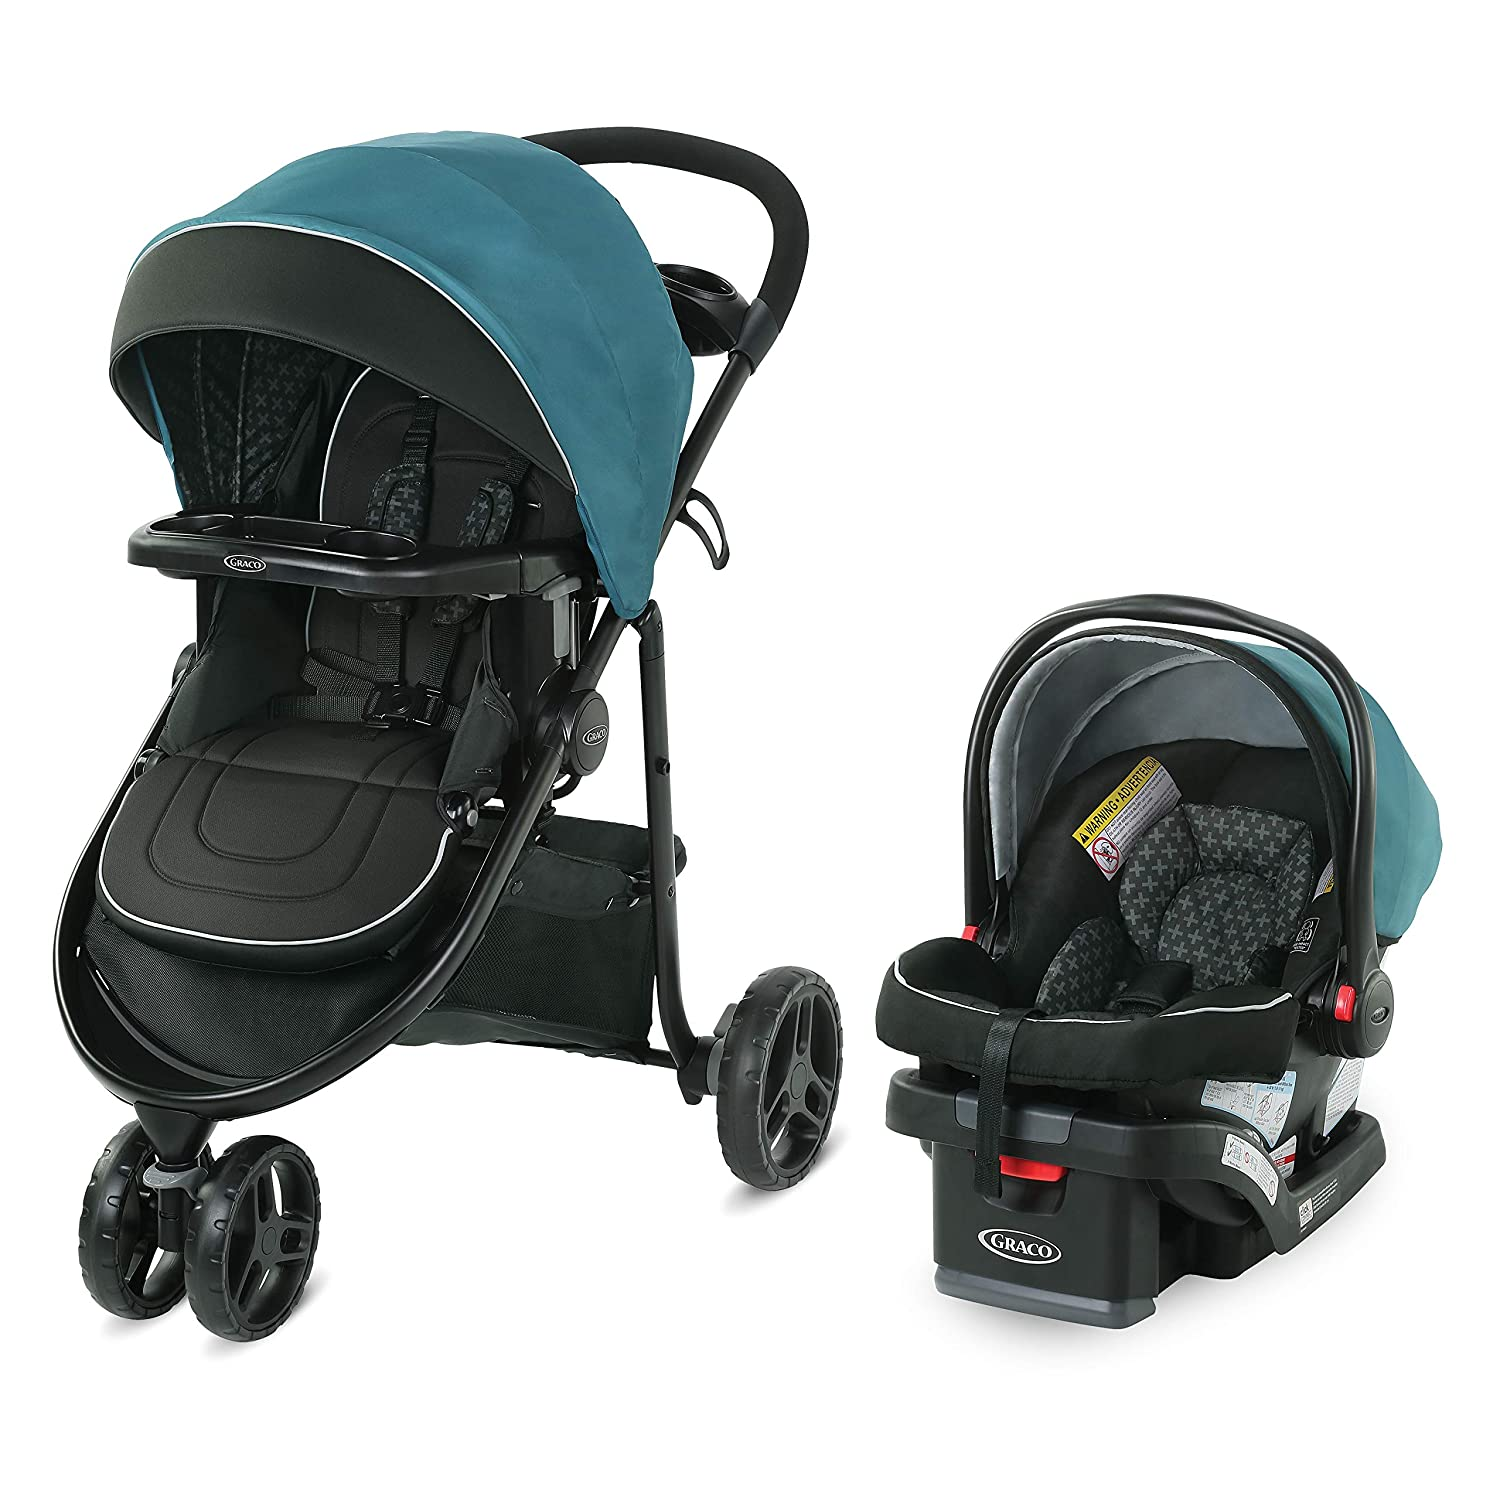 Graco Modes 3 Lite DLX Travel System Includes Modes 3 Lite DLX Stroller and SnugRide SnugLock 30 Infant Car Seat